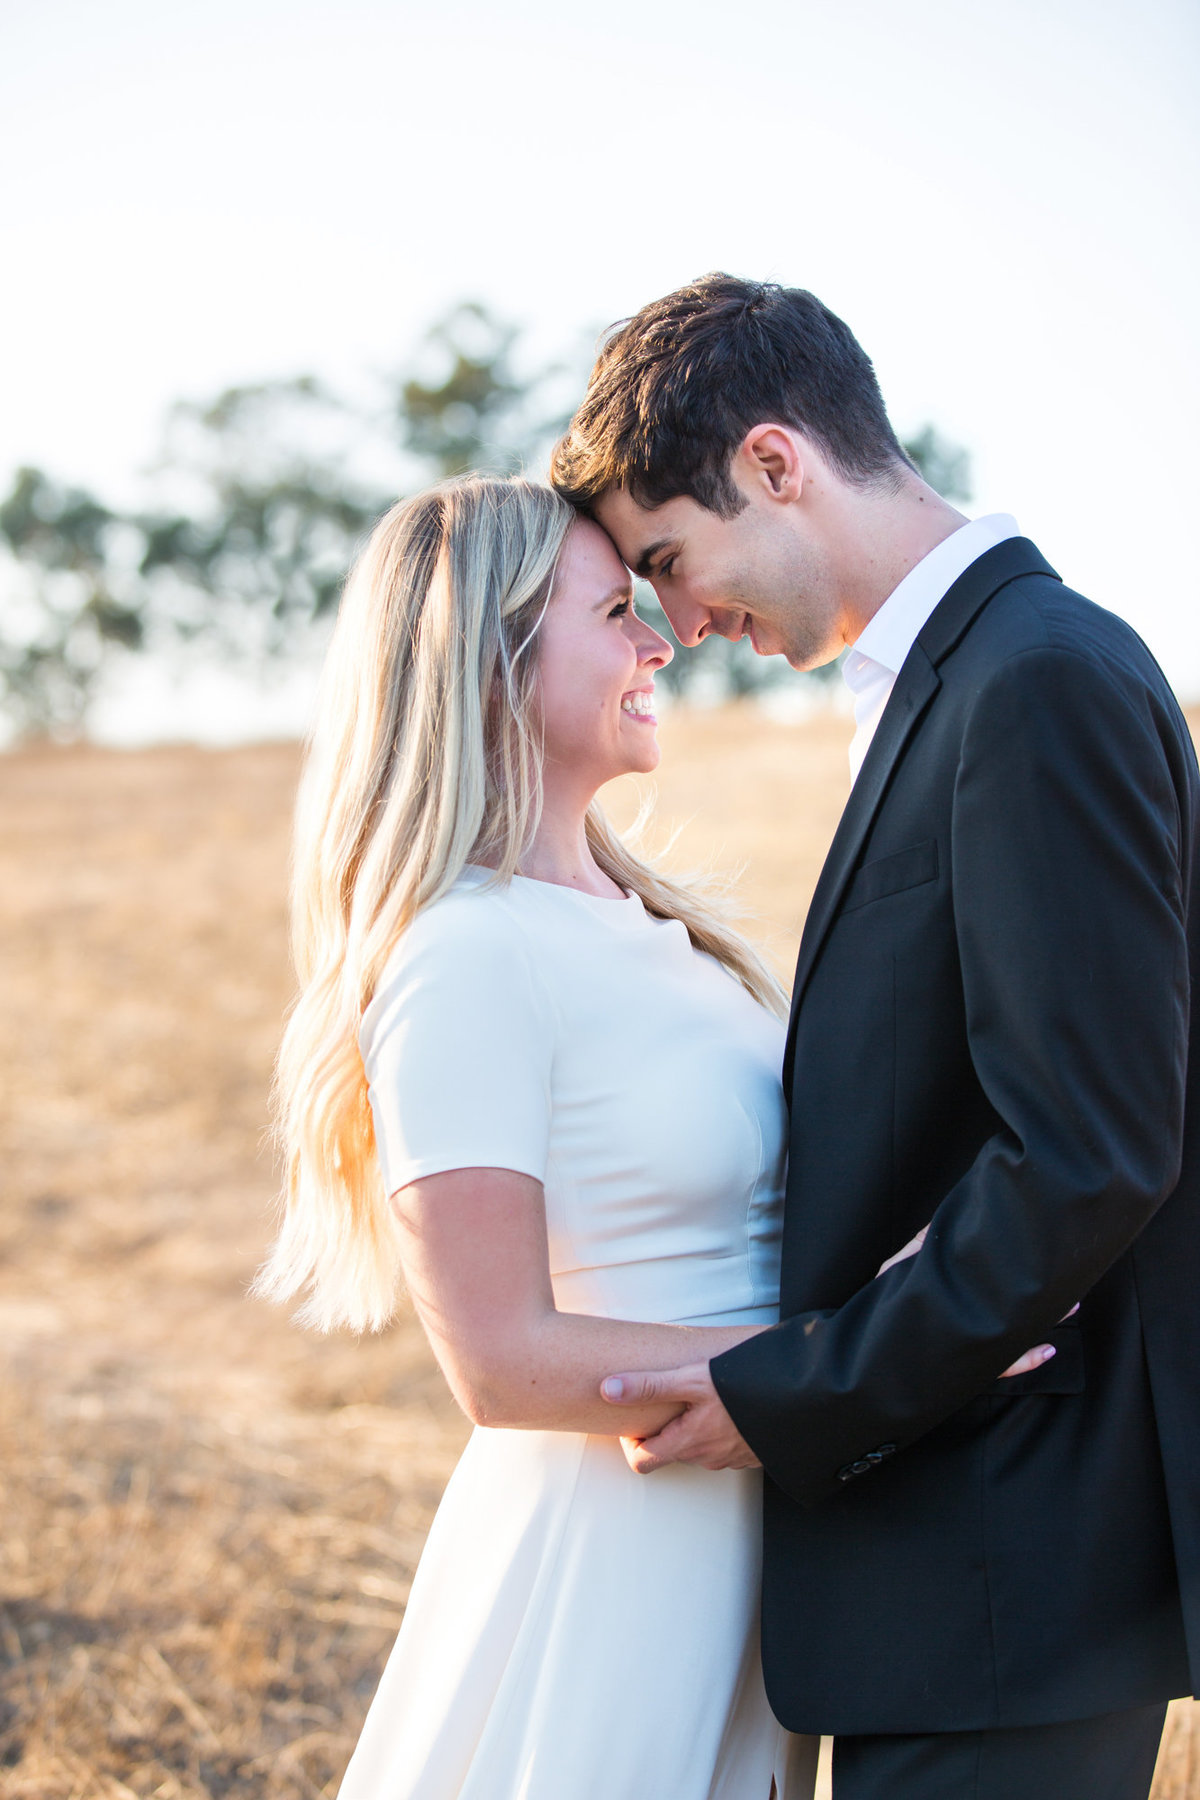 Sunset Engagement Photos in the Tall Yellow Grass in the Hills of Palo Alto